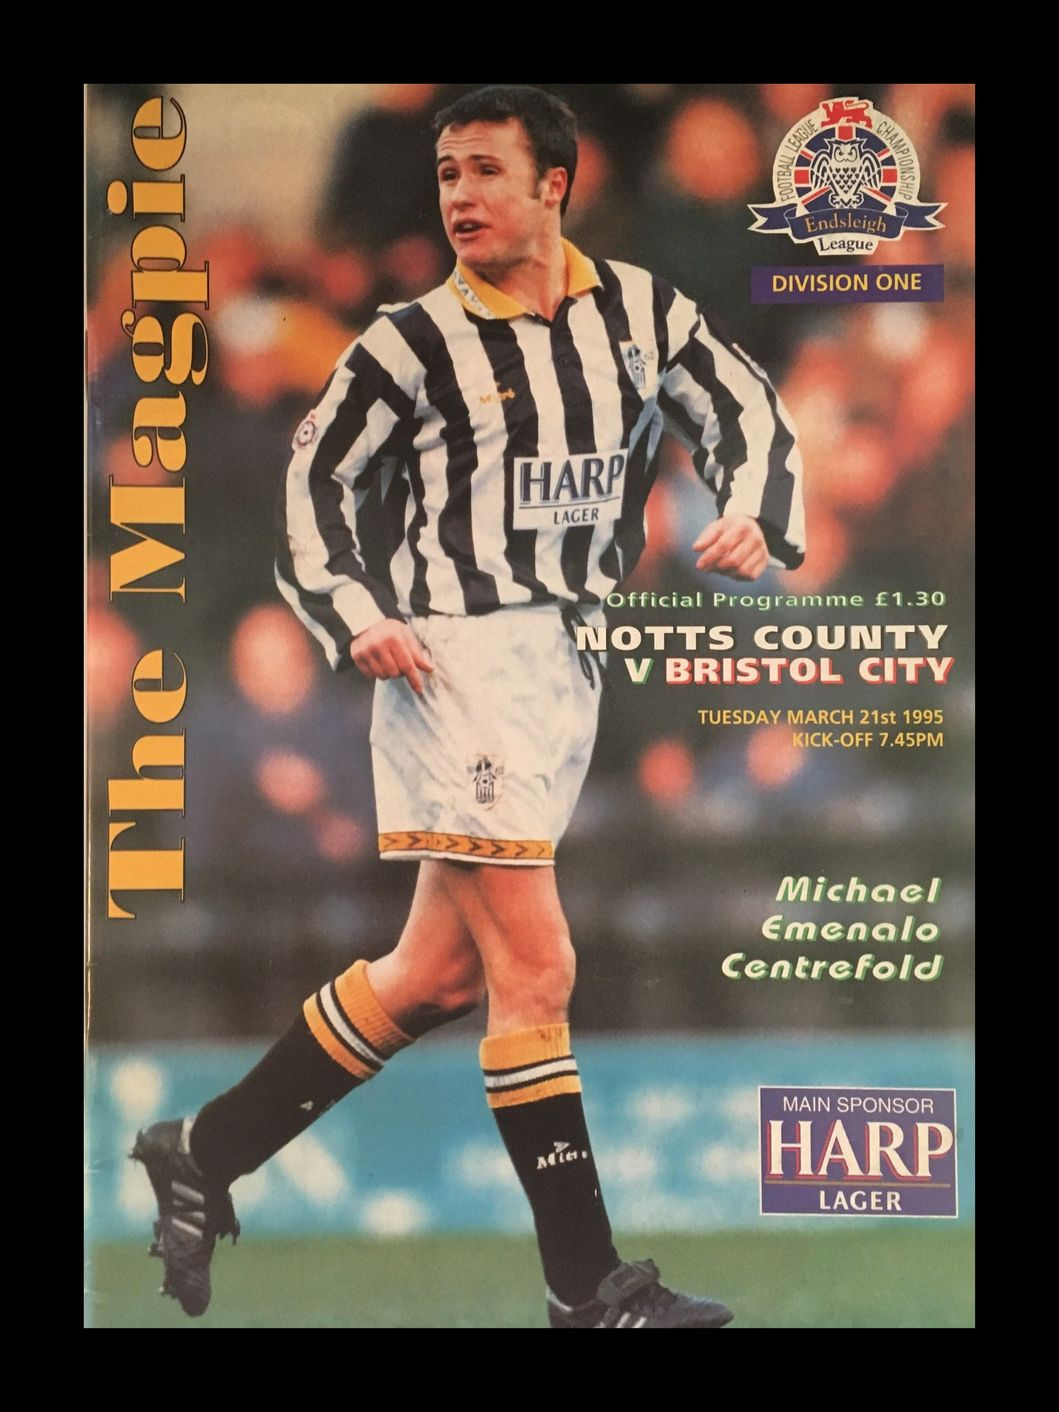 Notts County v Bristol City 21-03-1995 Programme